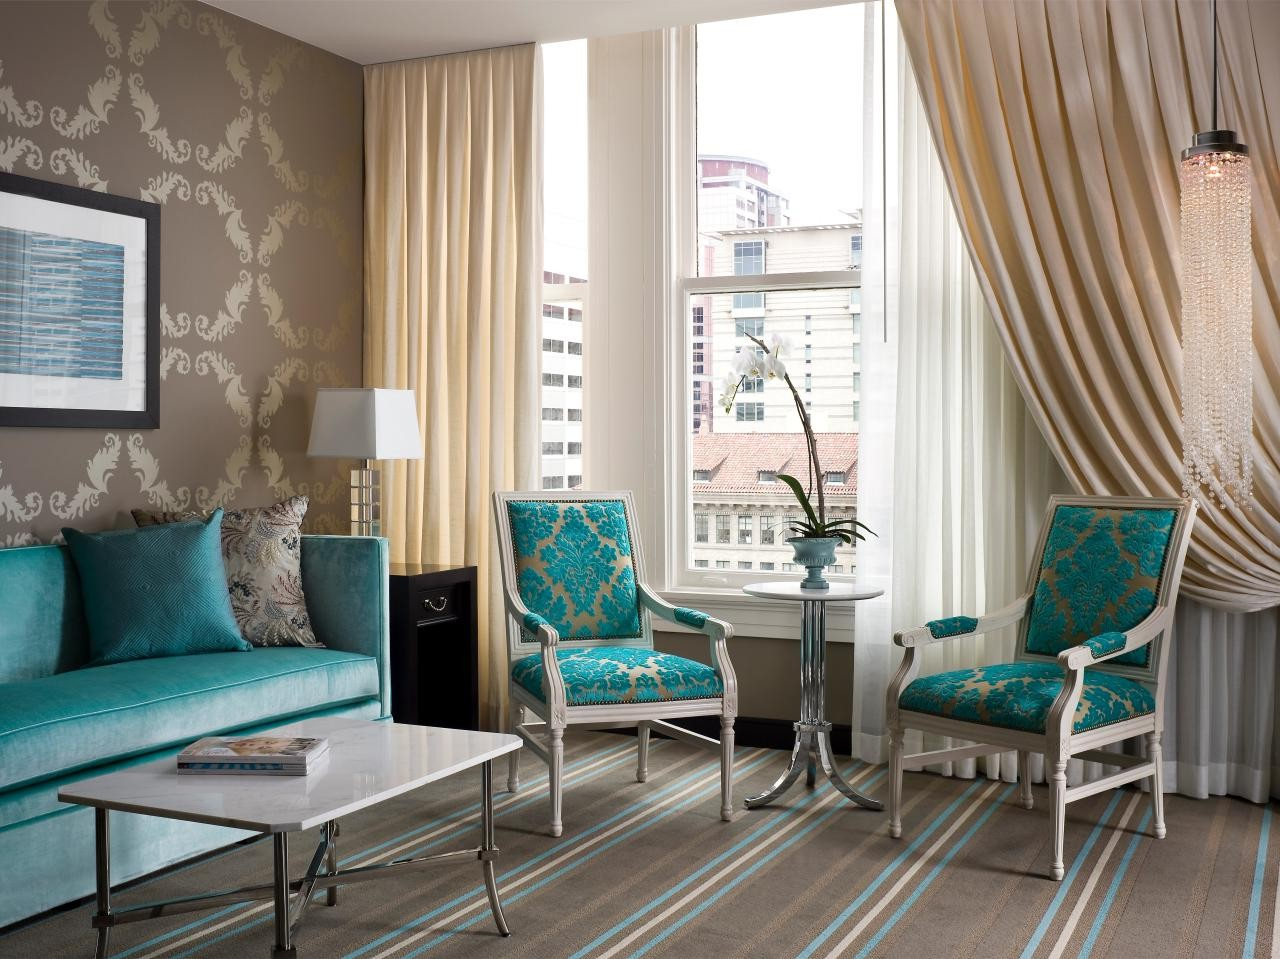 Beautiful living room in brown and turquoise